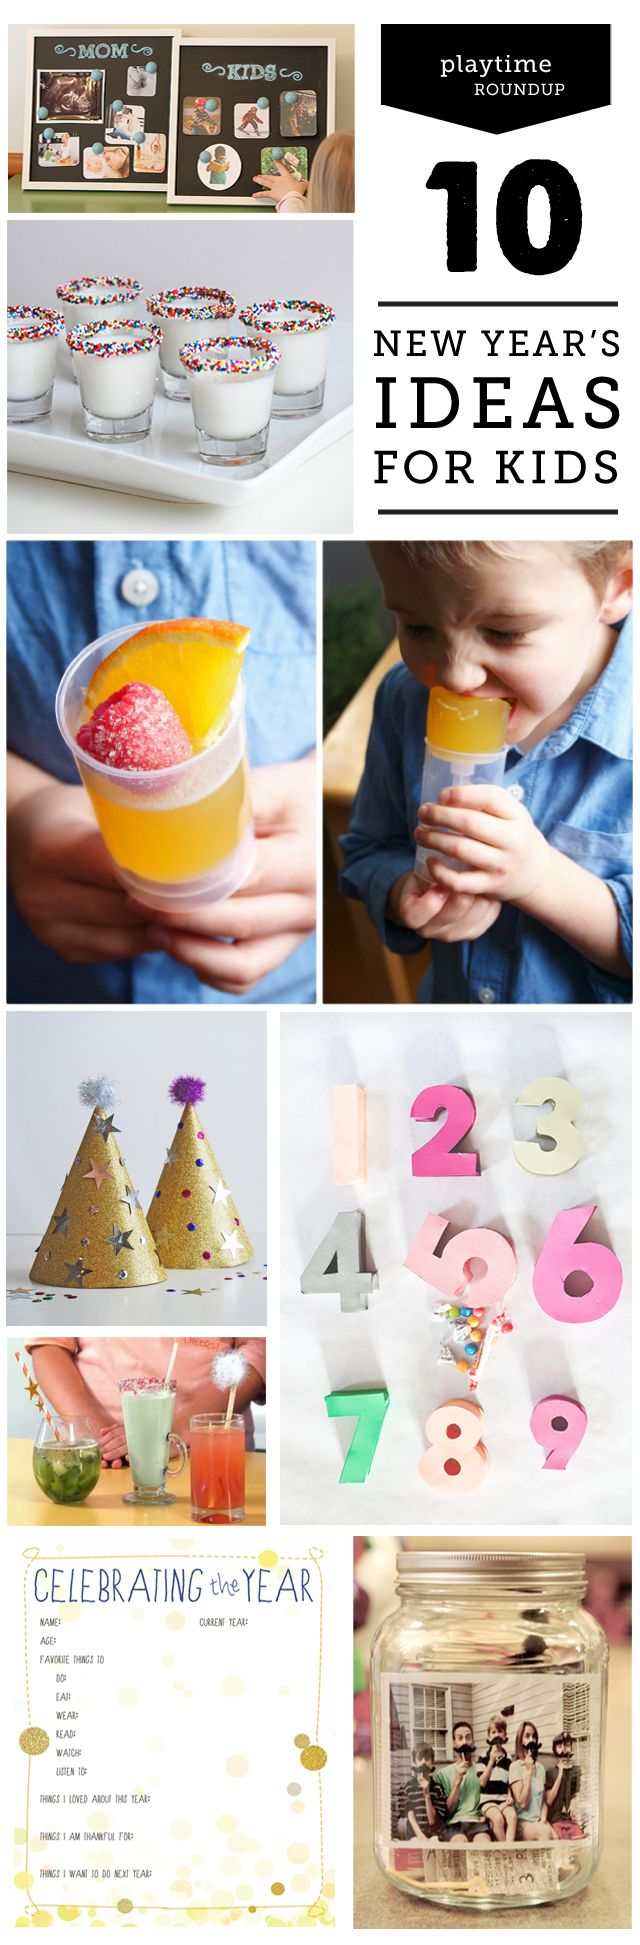 Awesome ideas on how to celebrate New Year's Eve as a family.  We're definitely doing #3 and #5 this year!: